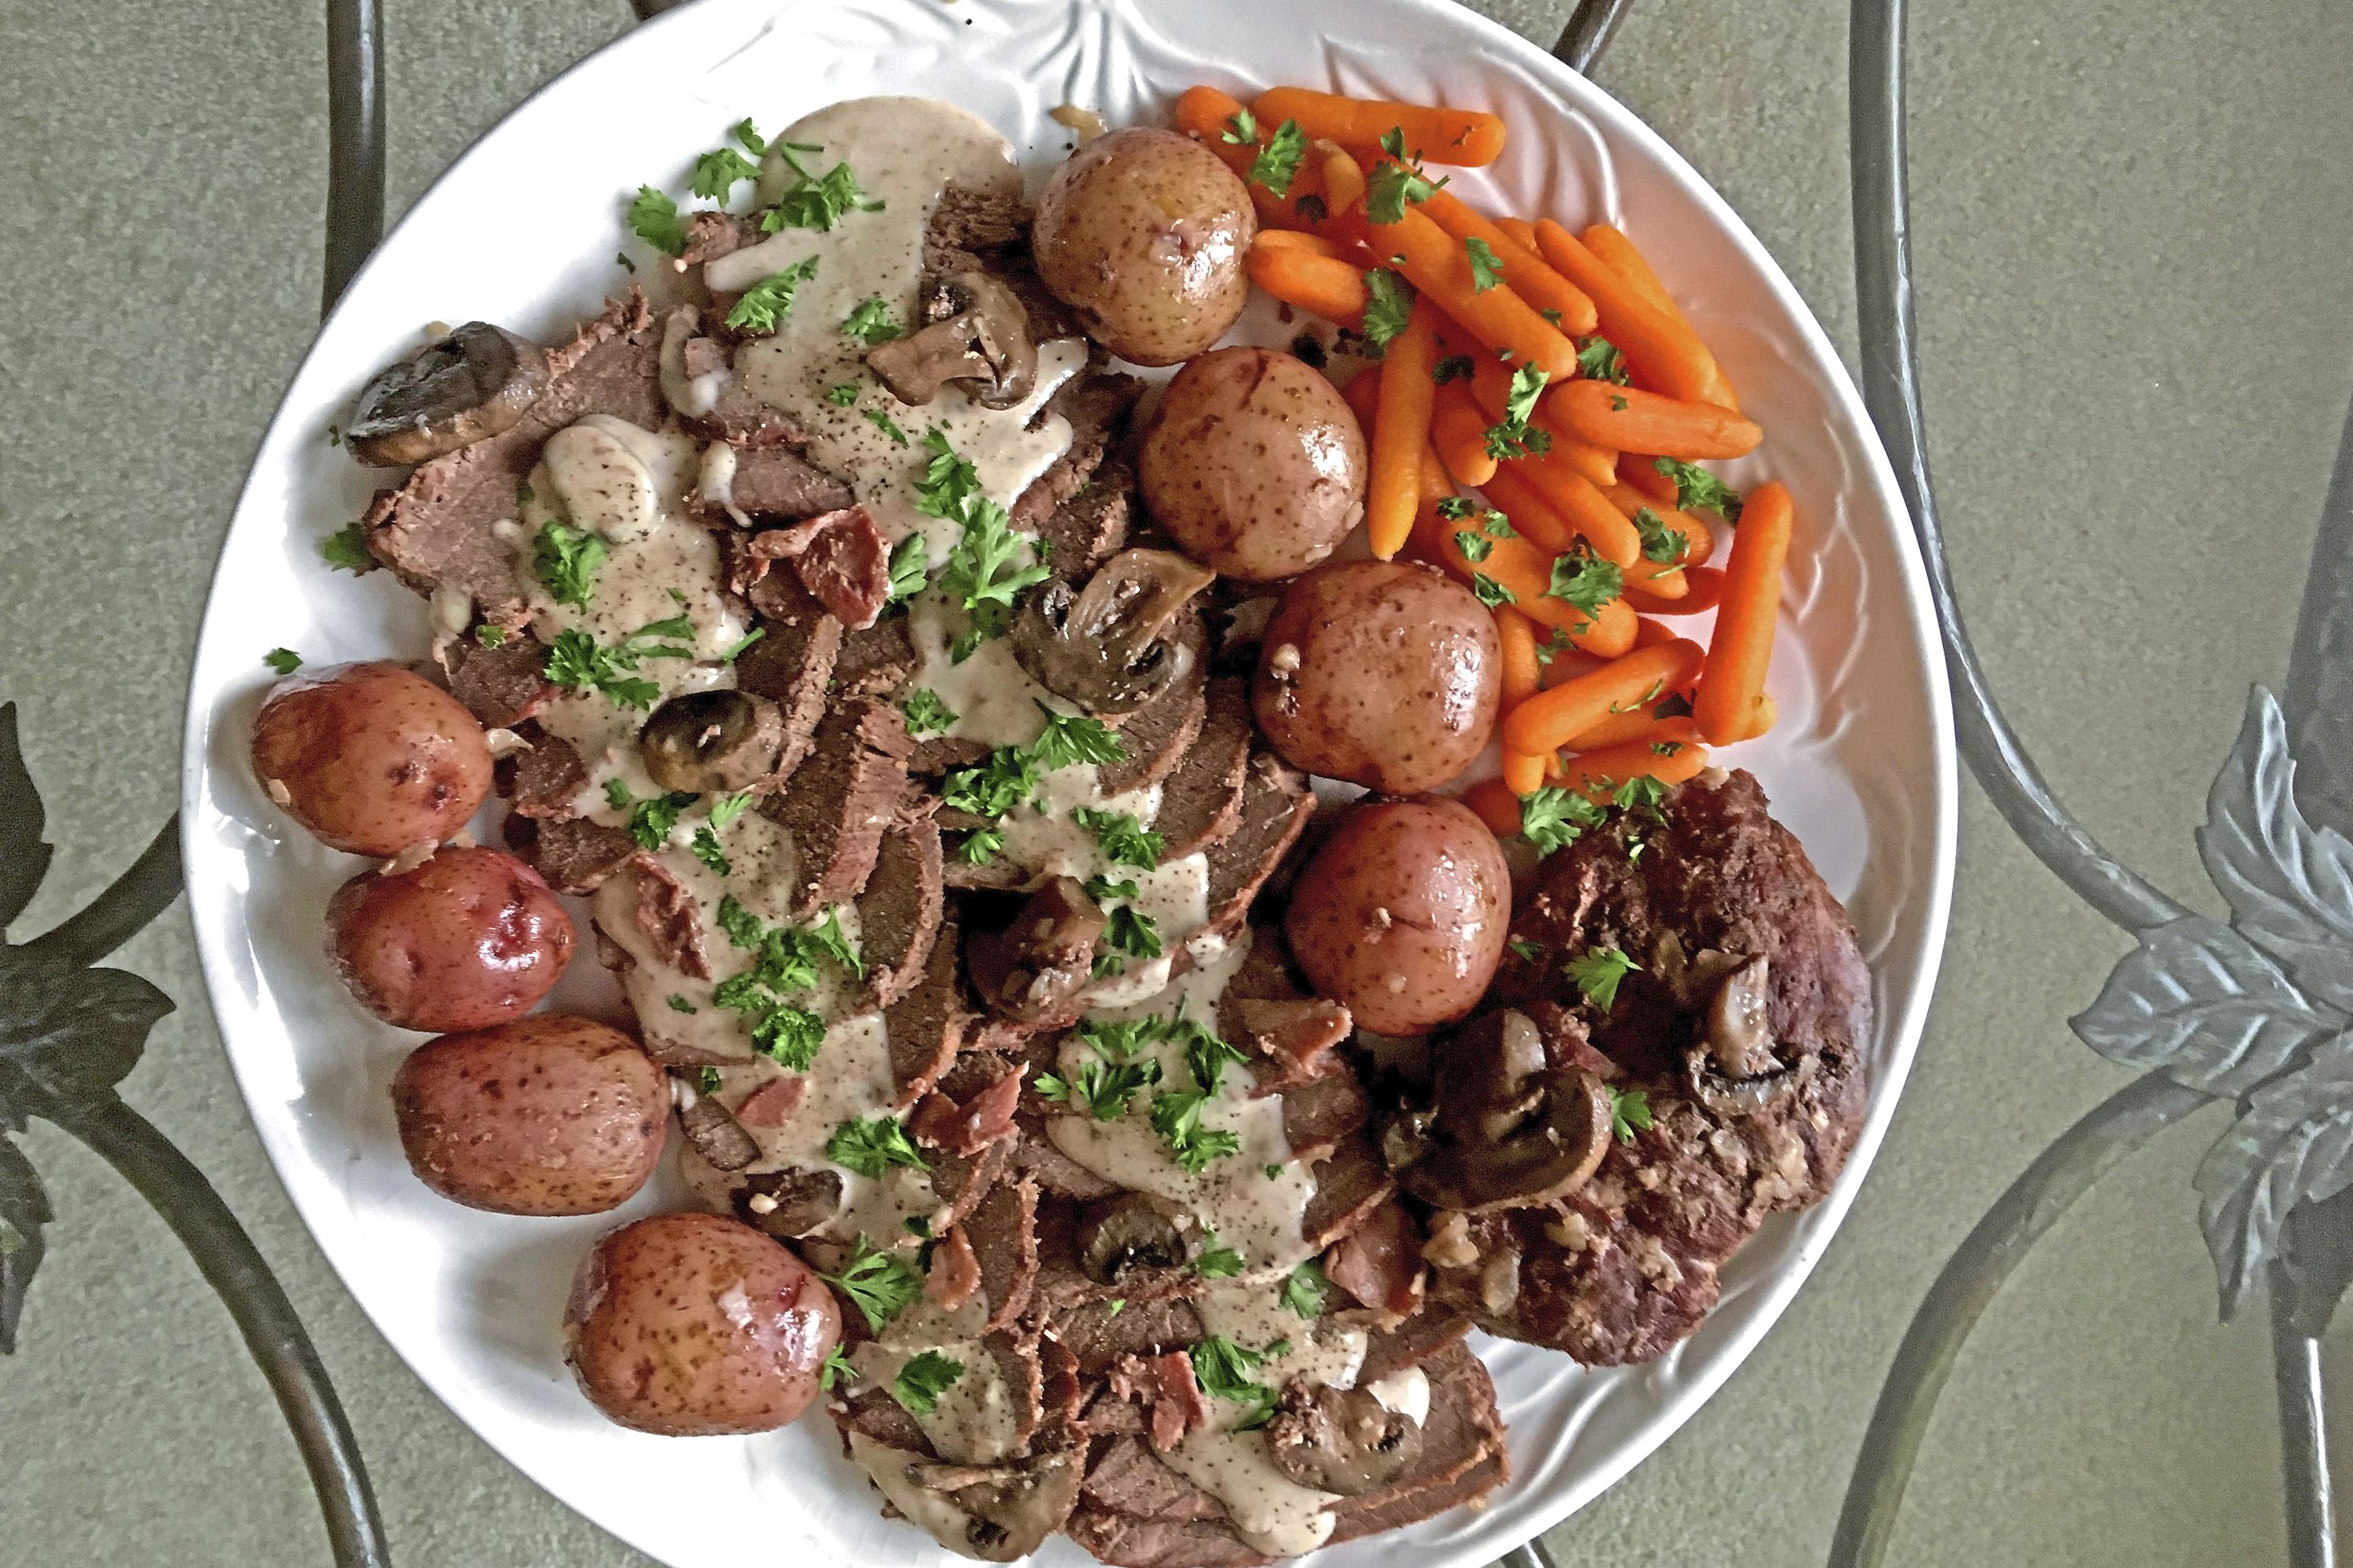 wildgame1004-05-4 Venison with mushrooms in a sour cream gravy, plated with new potatoes and carrots